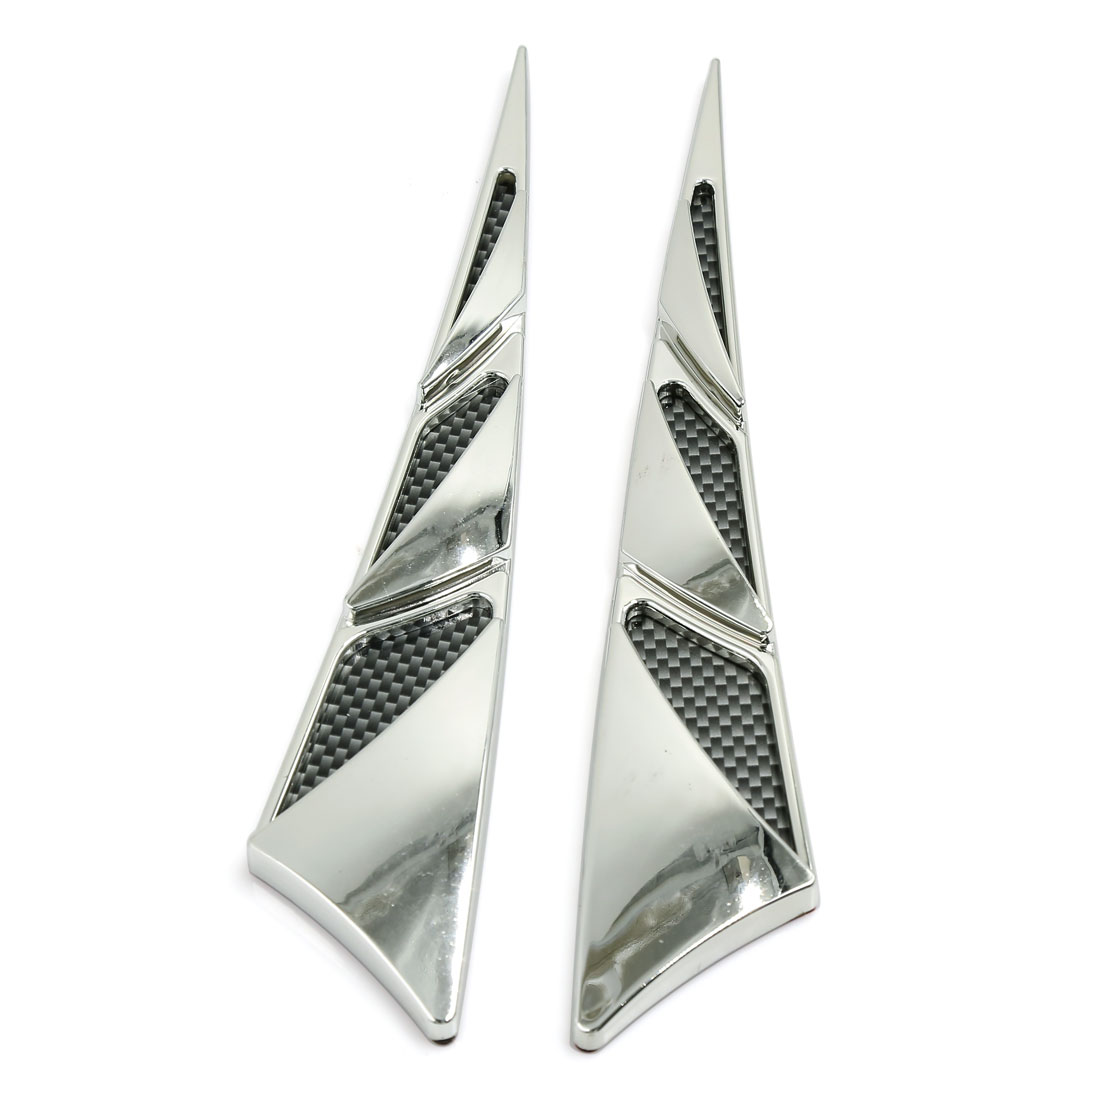 2pcs Carbon Fiber Pattern Triangle Shape Car Air Flow Vent Fender Sticker